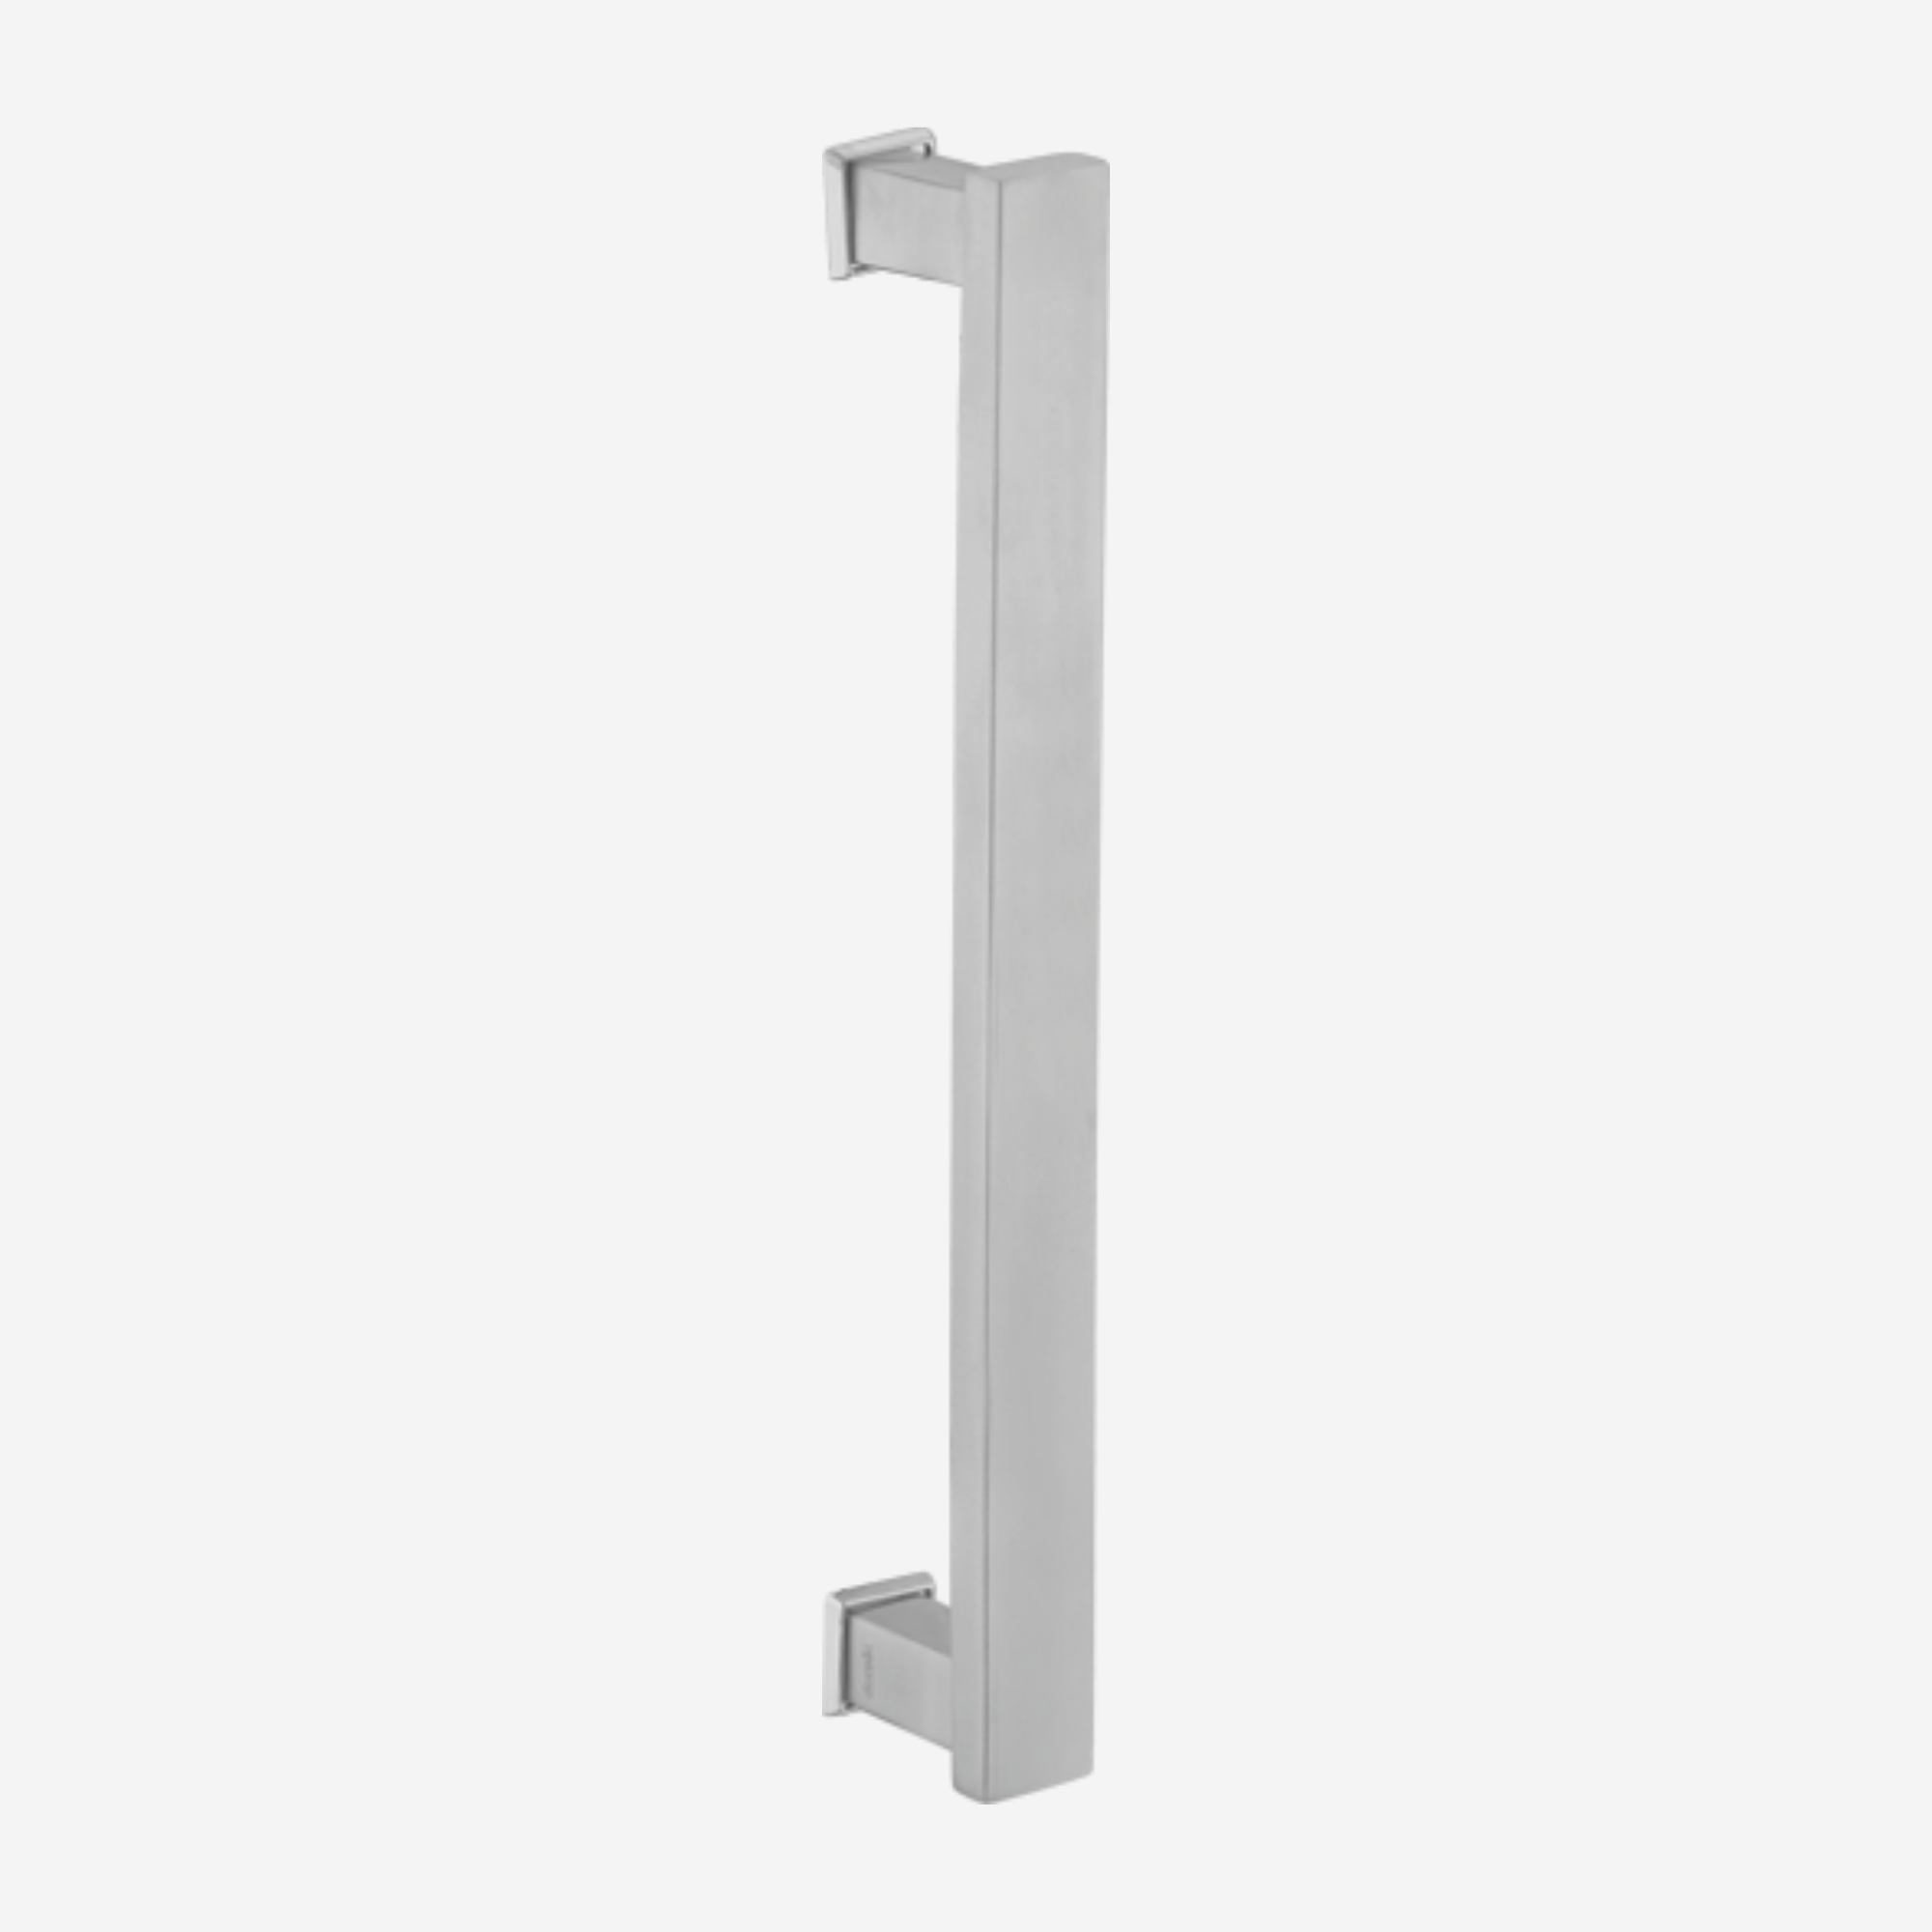 Dorset PULL HANDLE FOR DOOR 6inch - PR 06 P SS